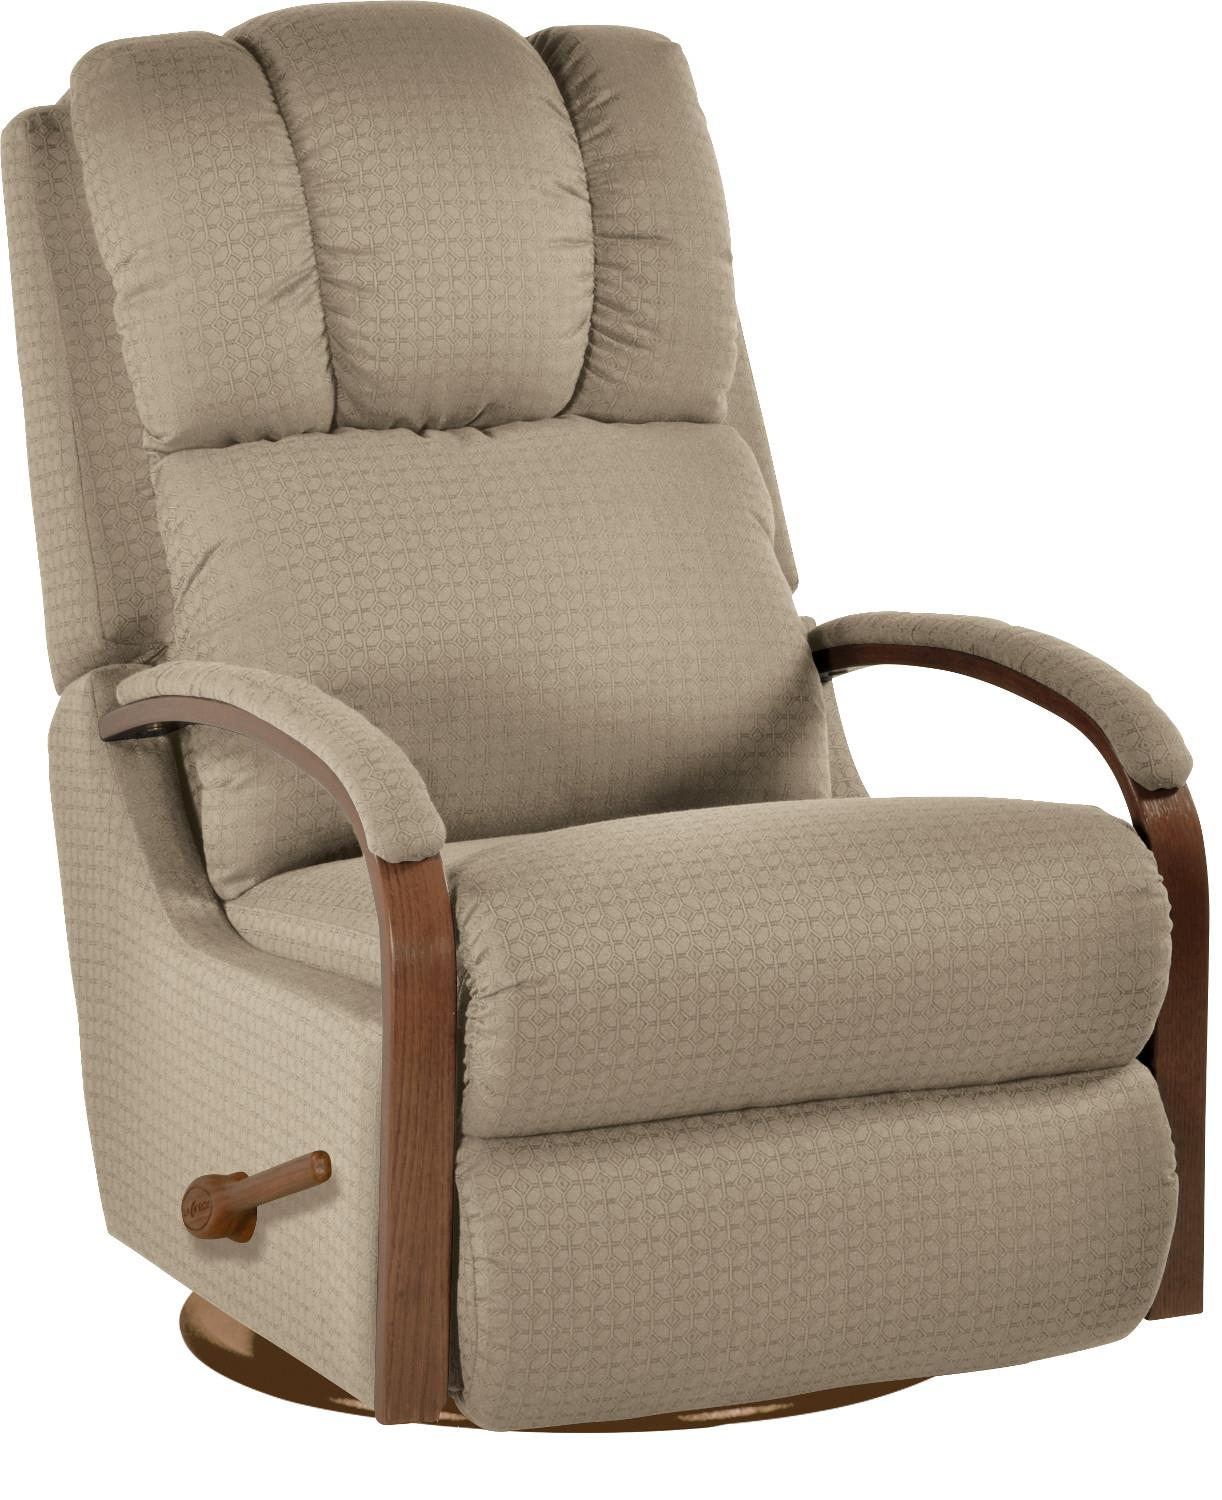 Recliners Swivel Glider Recliner by La-Z-Boy at Sparks HomeStore